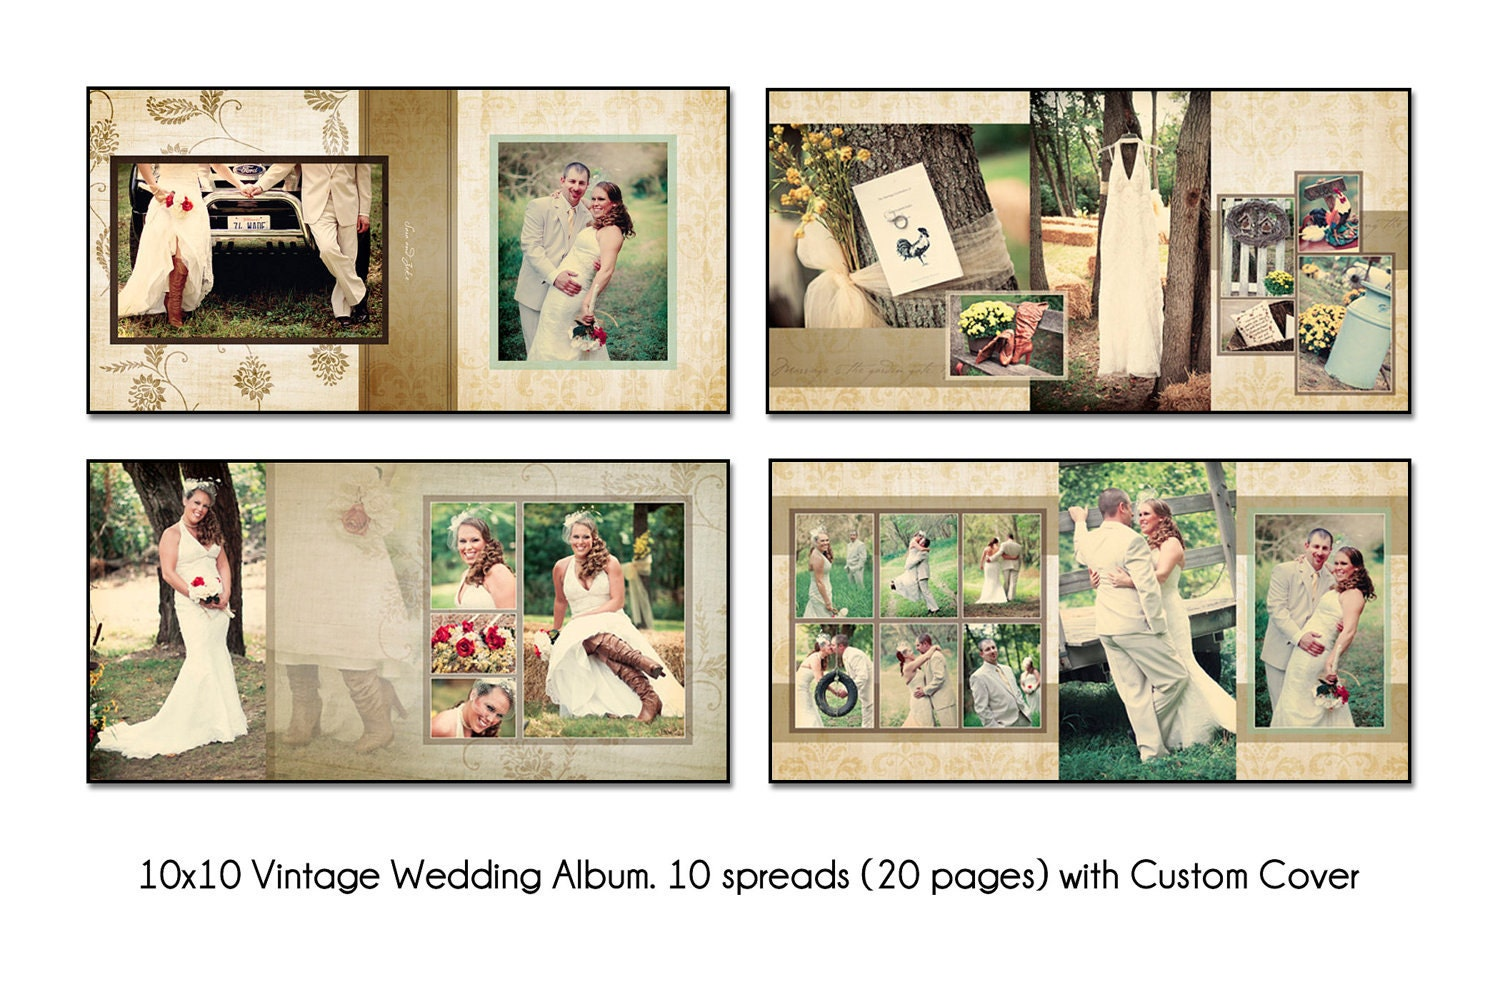 Vintage 10x10 album template 10 spread20 page design for Wedding photo album templates in photoshop